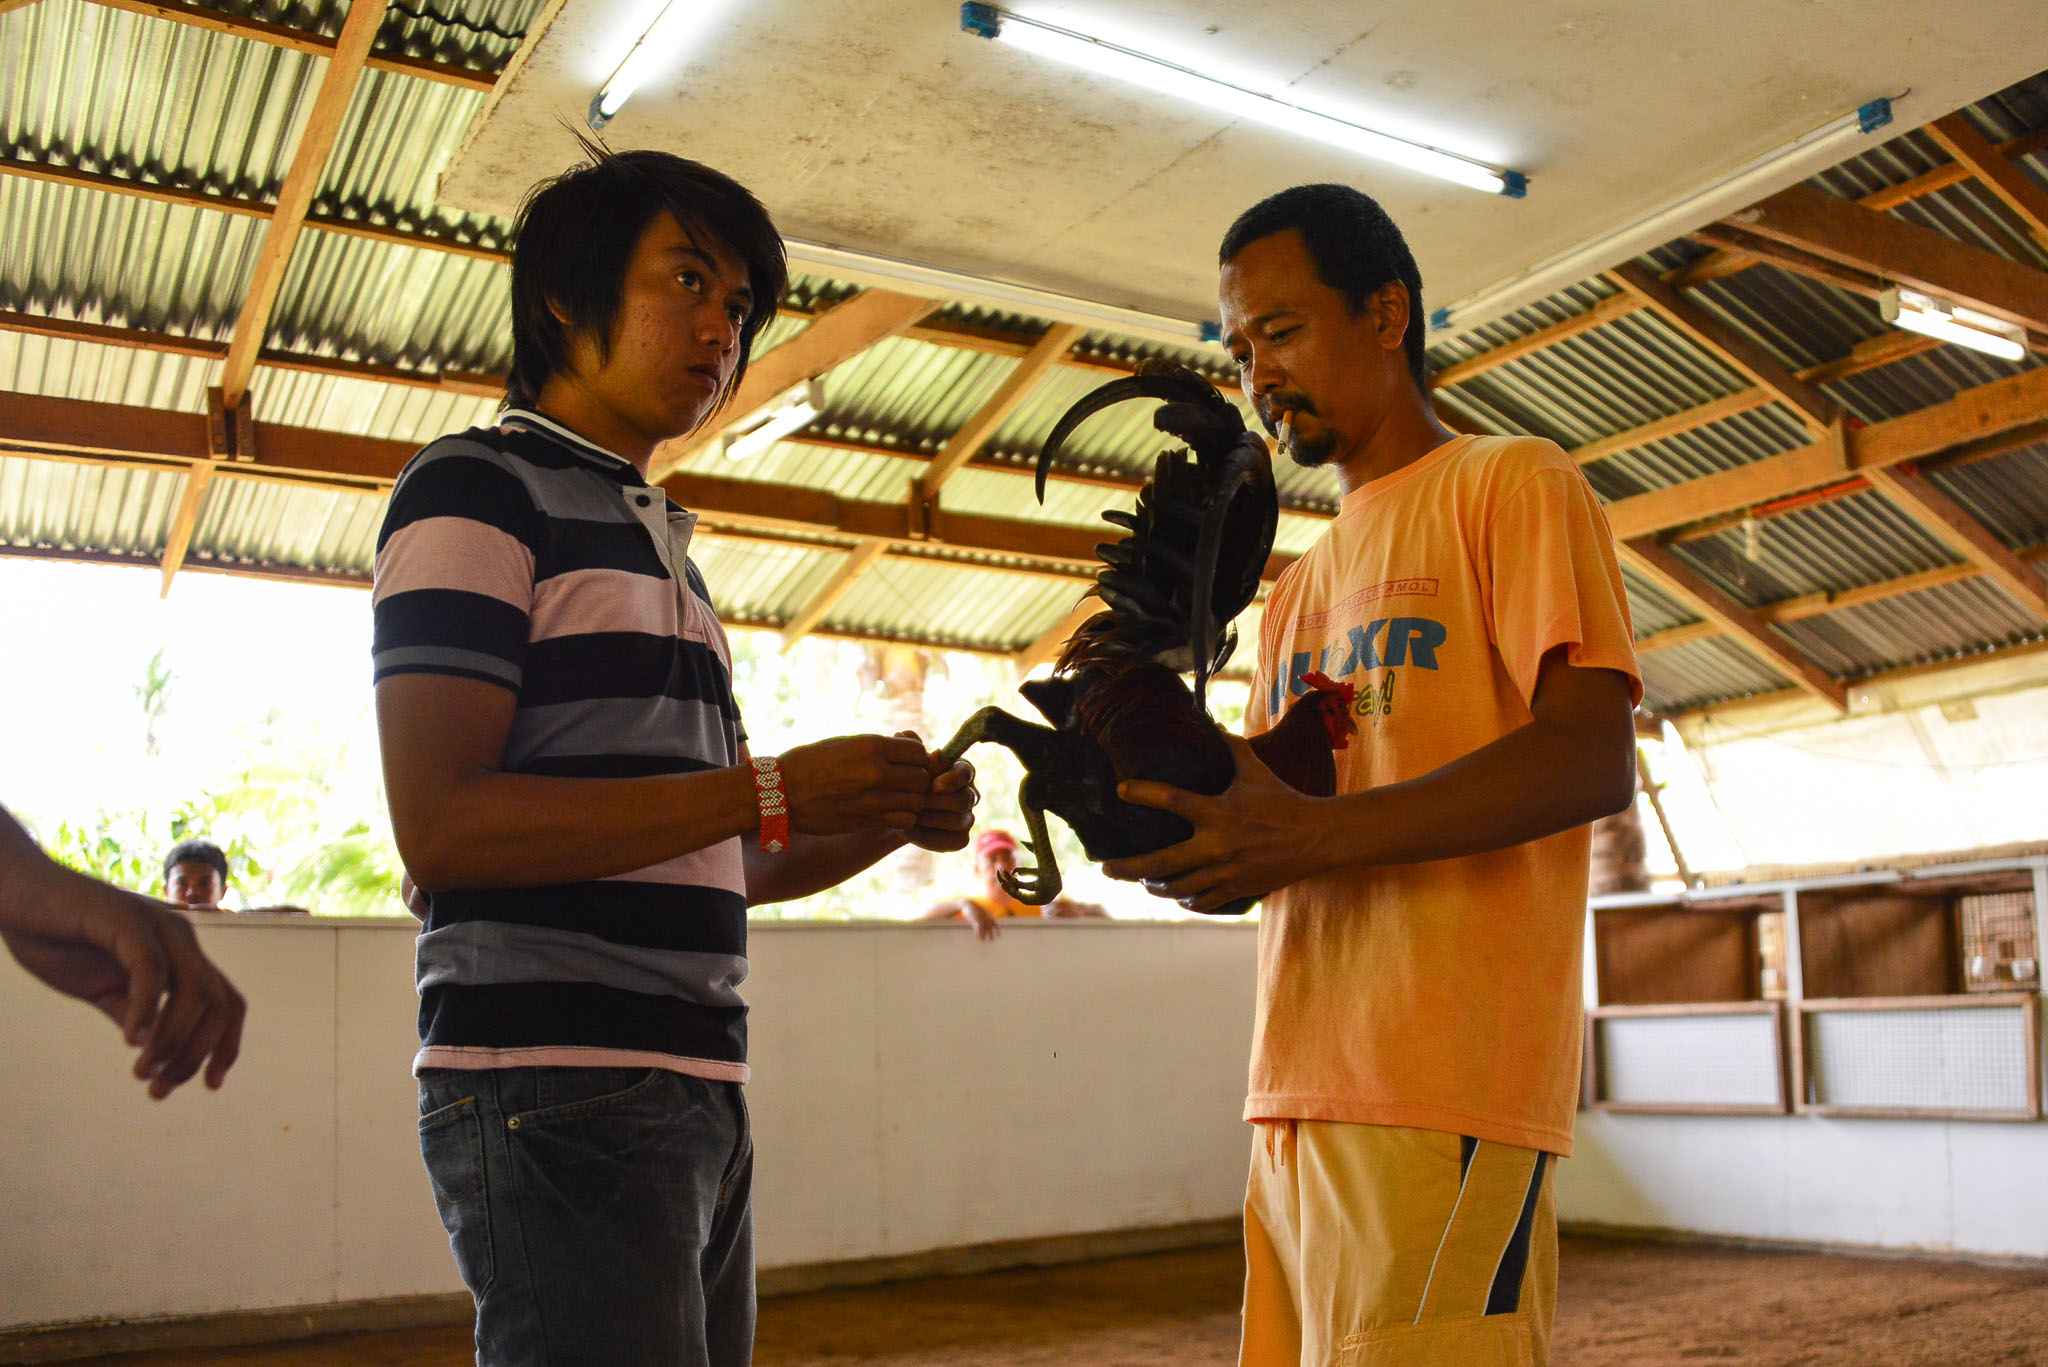 Rooster_Fighting_Philippines_11